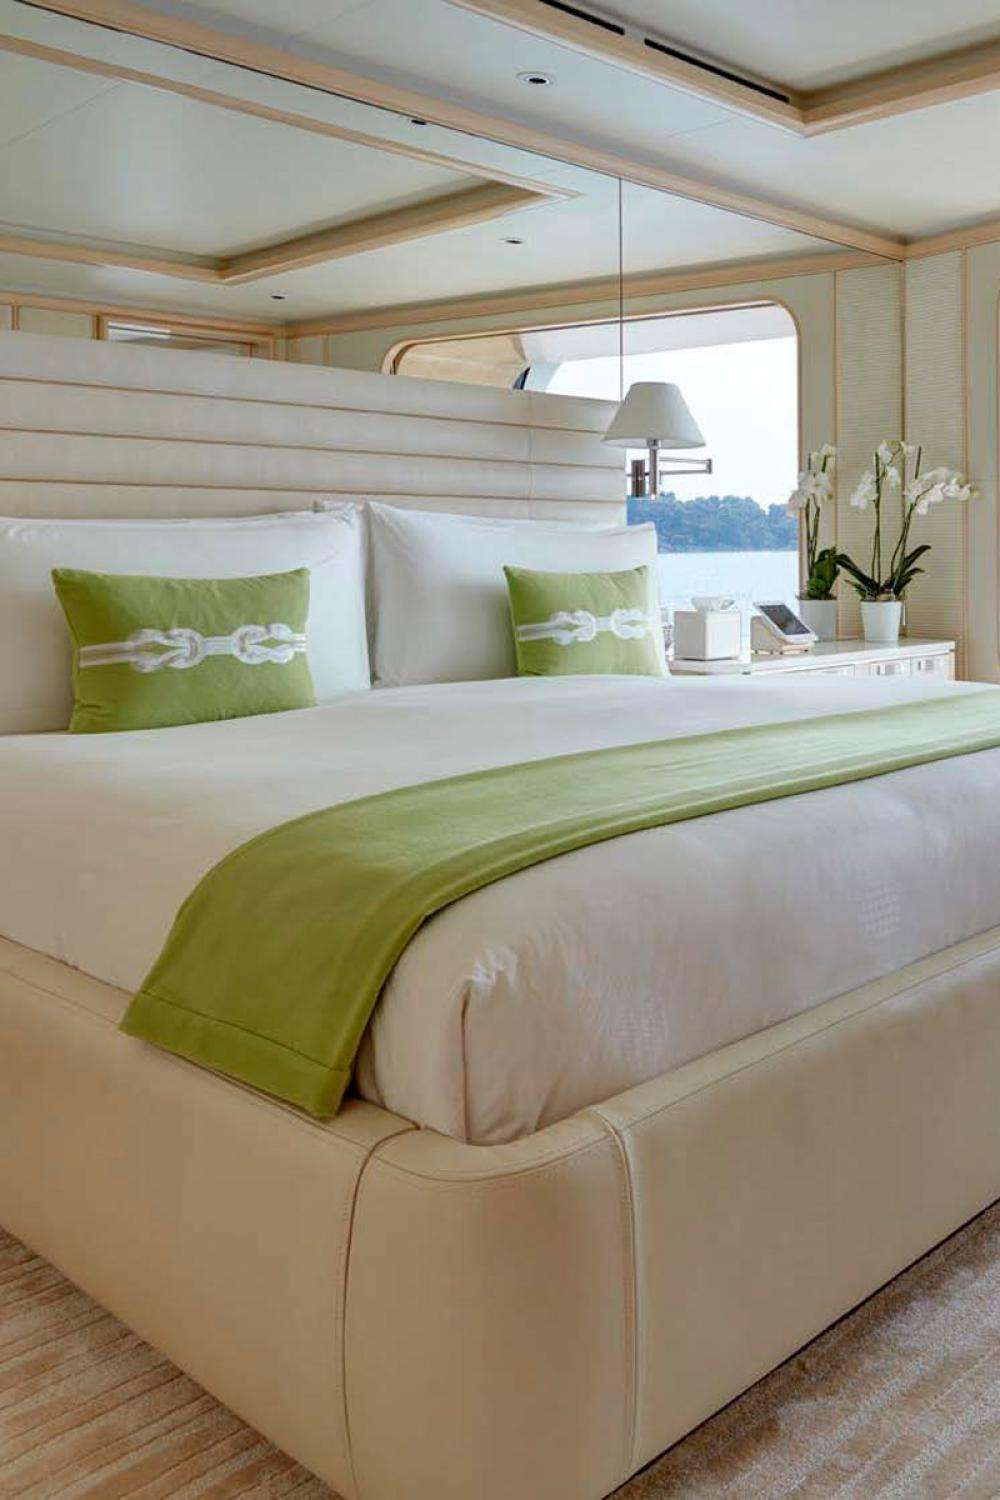 AQUARIUS - Luxury Motor Yacht For Charter - 6 VIP Cabins on the main deck - Img 5   C&N